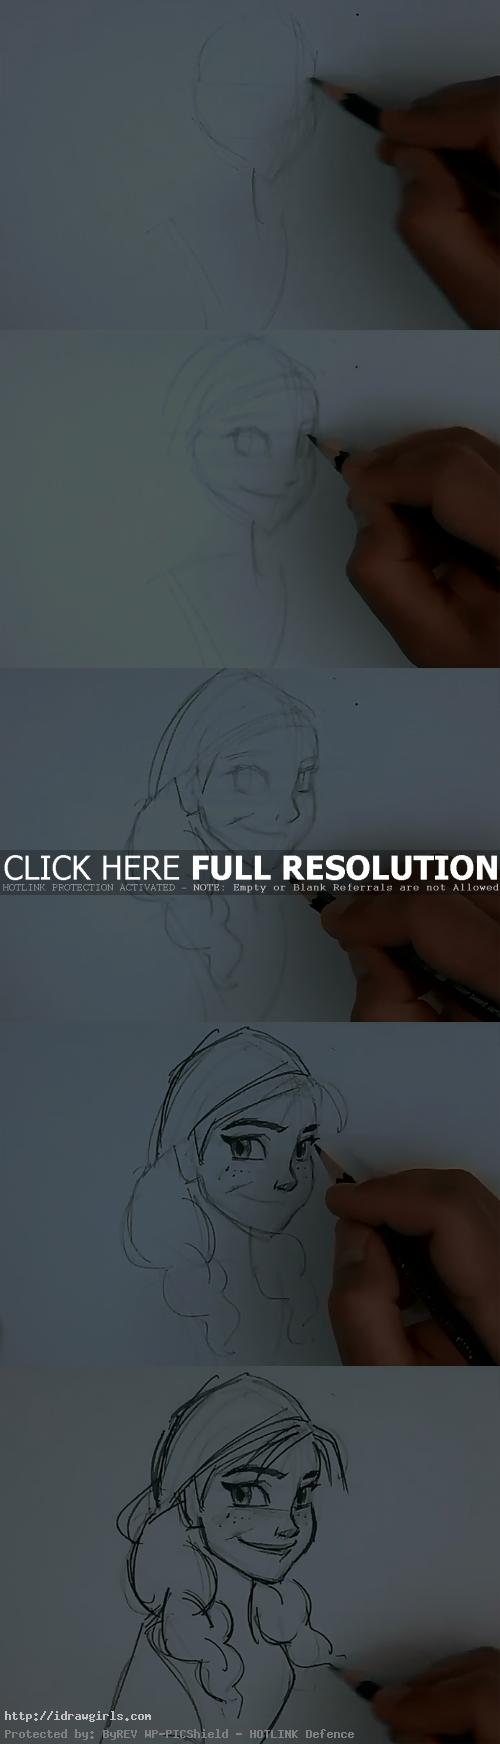 how to draw anna from frozen How to draw Anna from Frozen